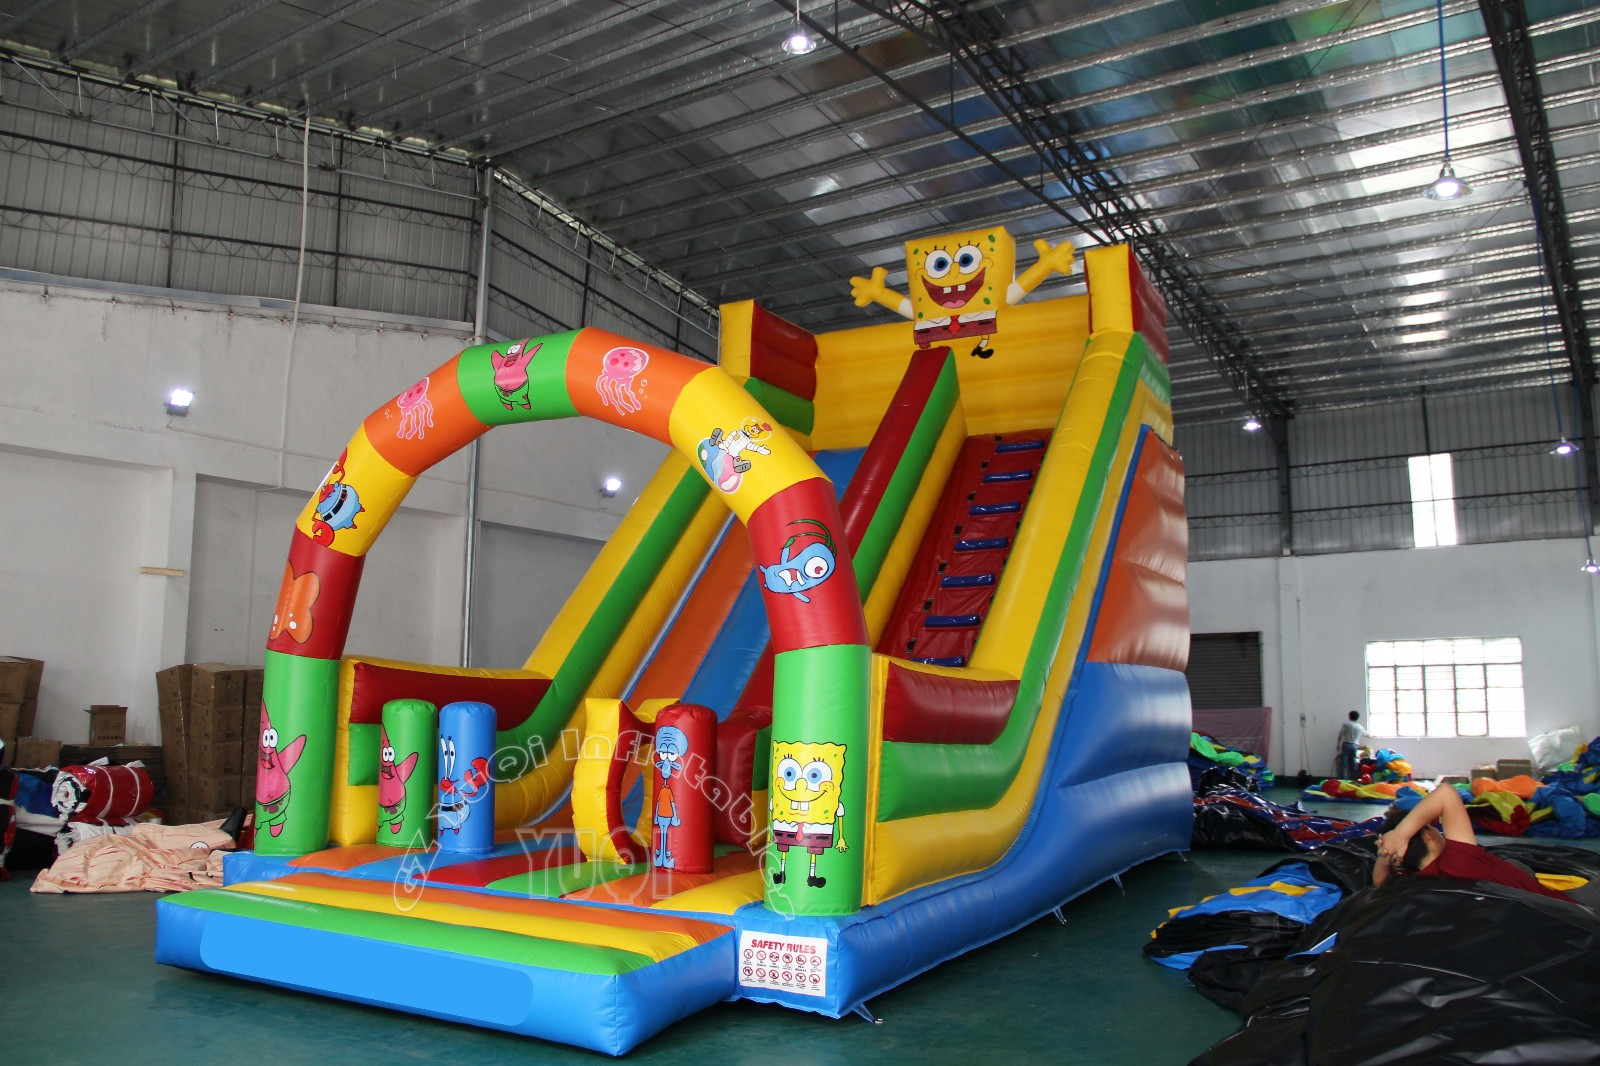 YUQI-Best Yq348 Popular Inflatable Pool Slide For Kids Outdoor